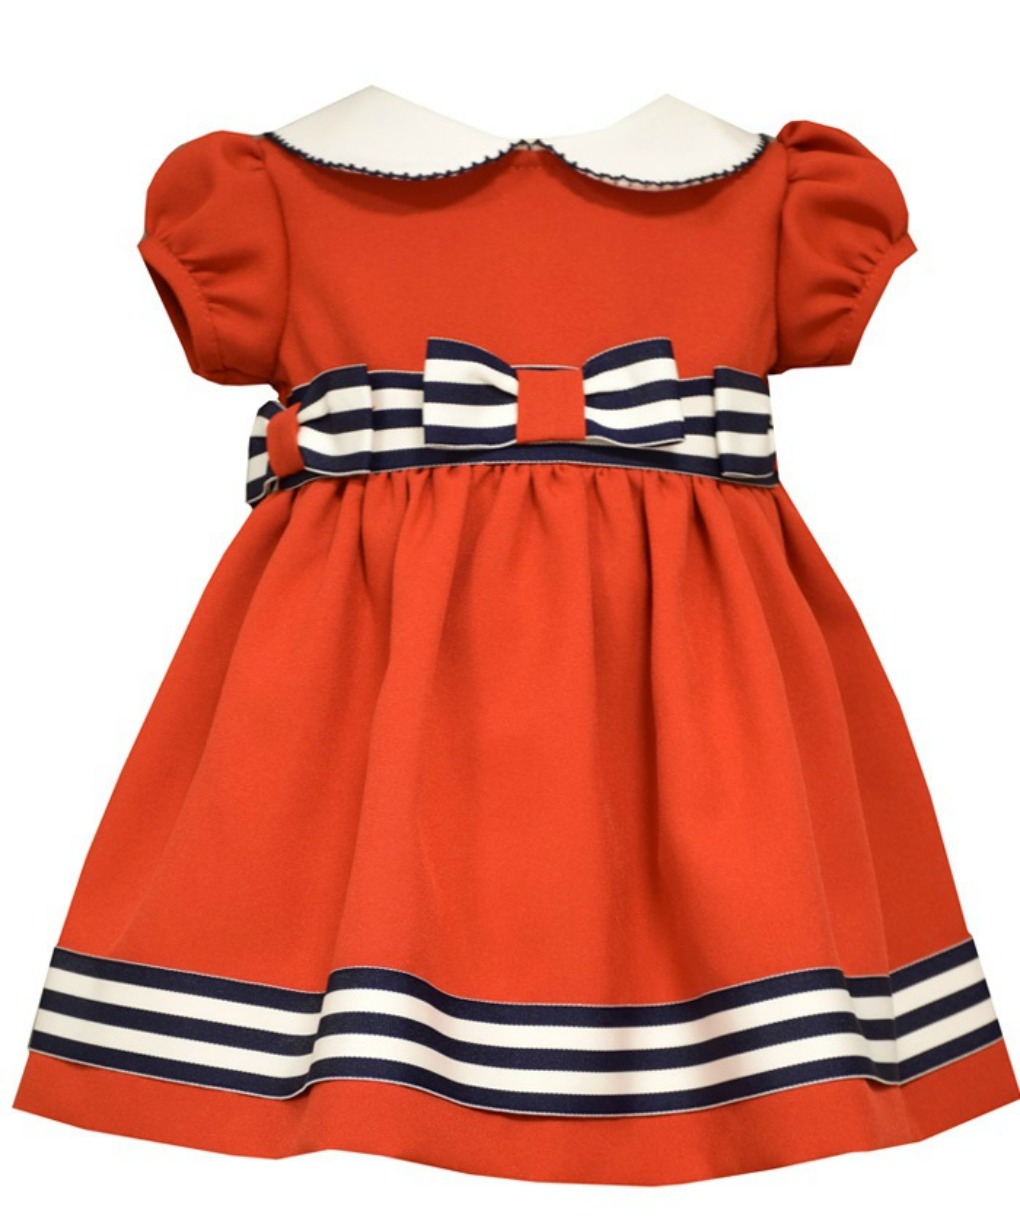 70b81089e7ae Bonnie Jean - Bonnie Jean Baby Girls Red Stripe Bow Dress 0-3 months ...